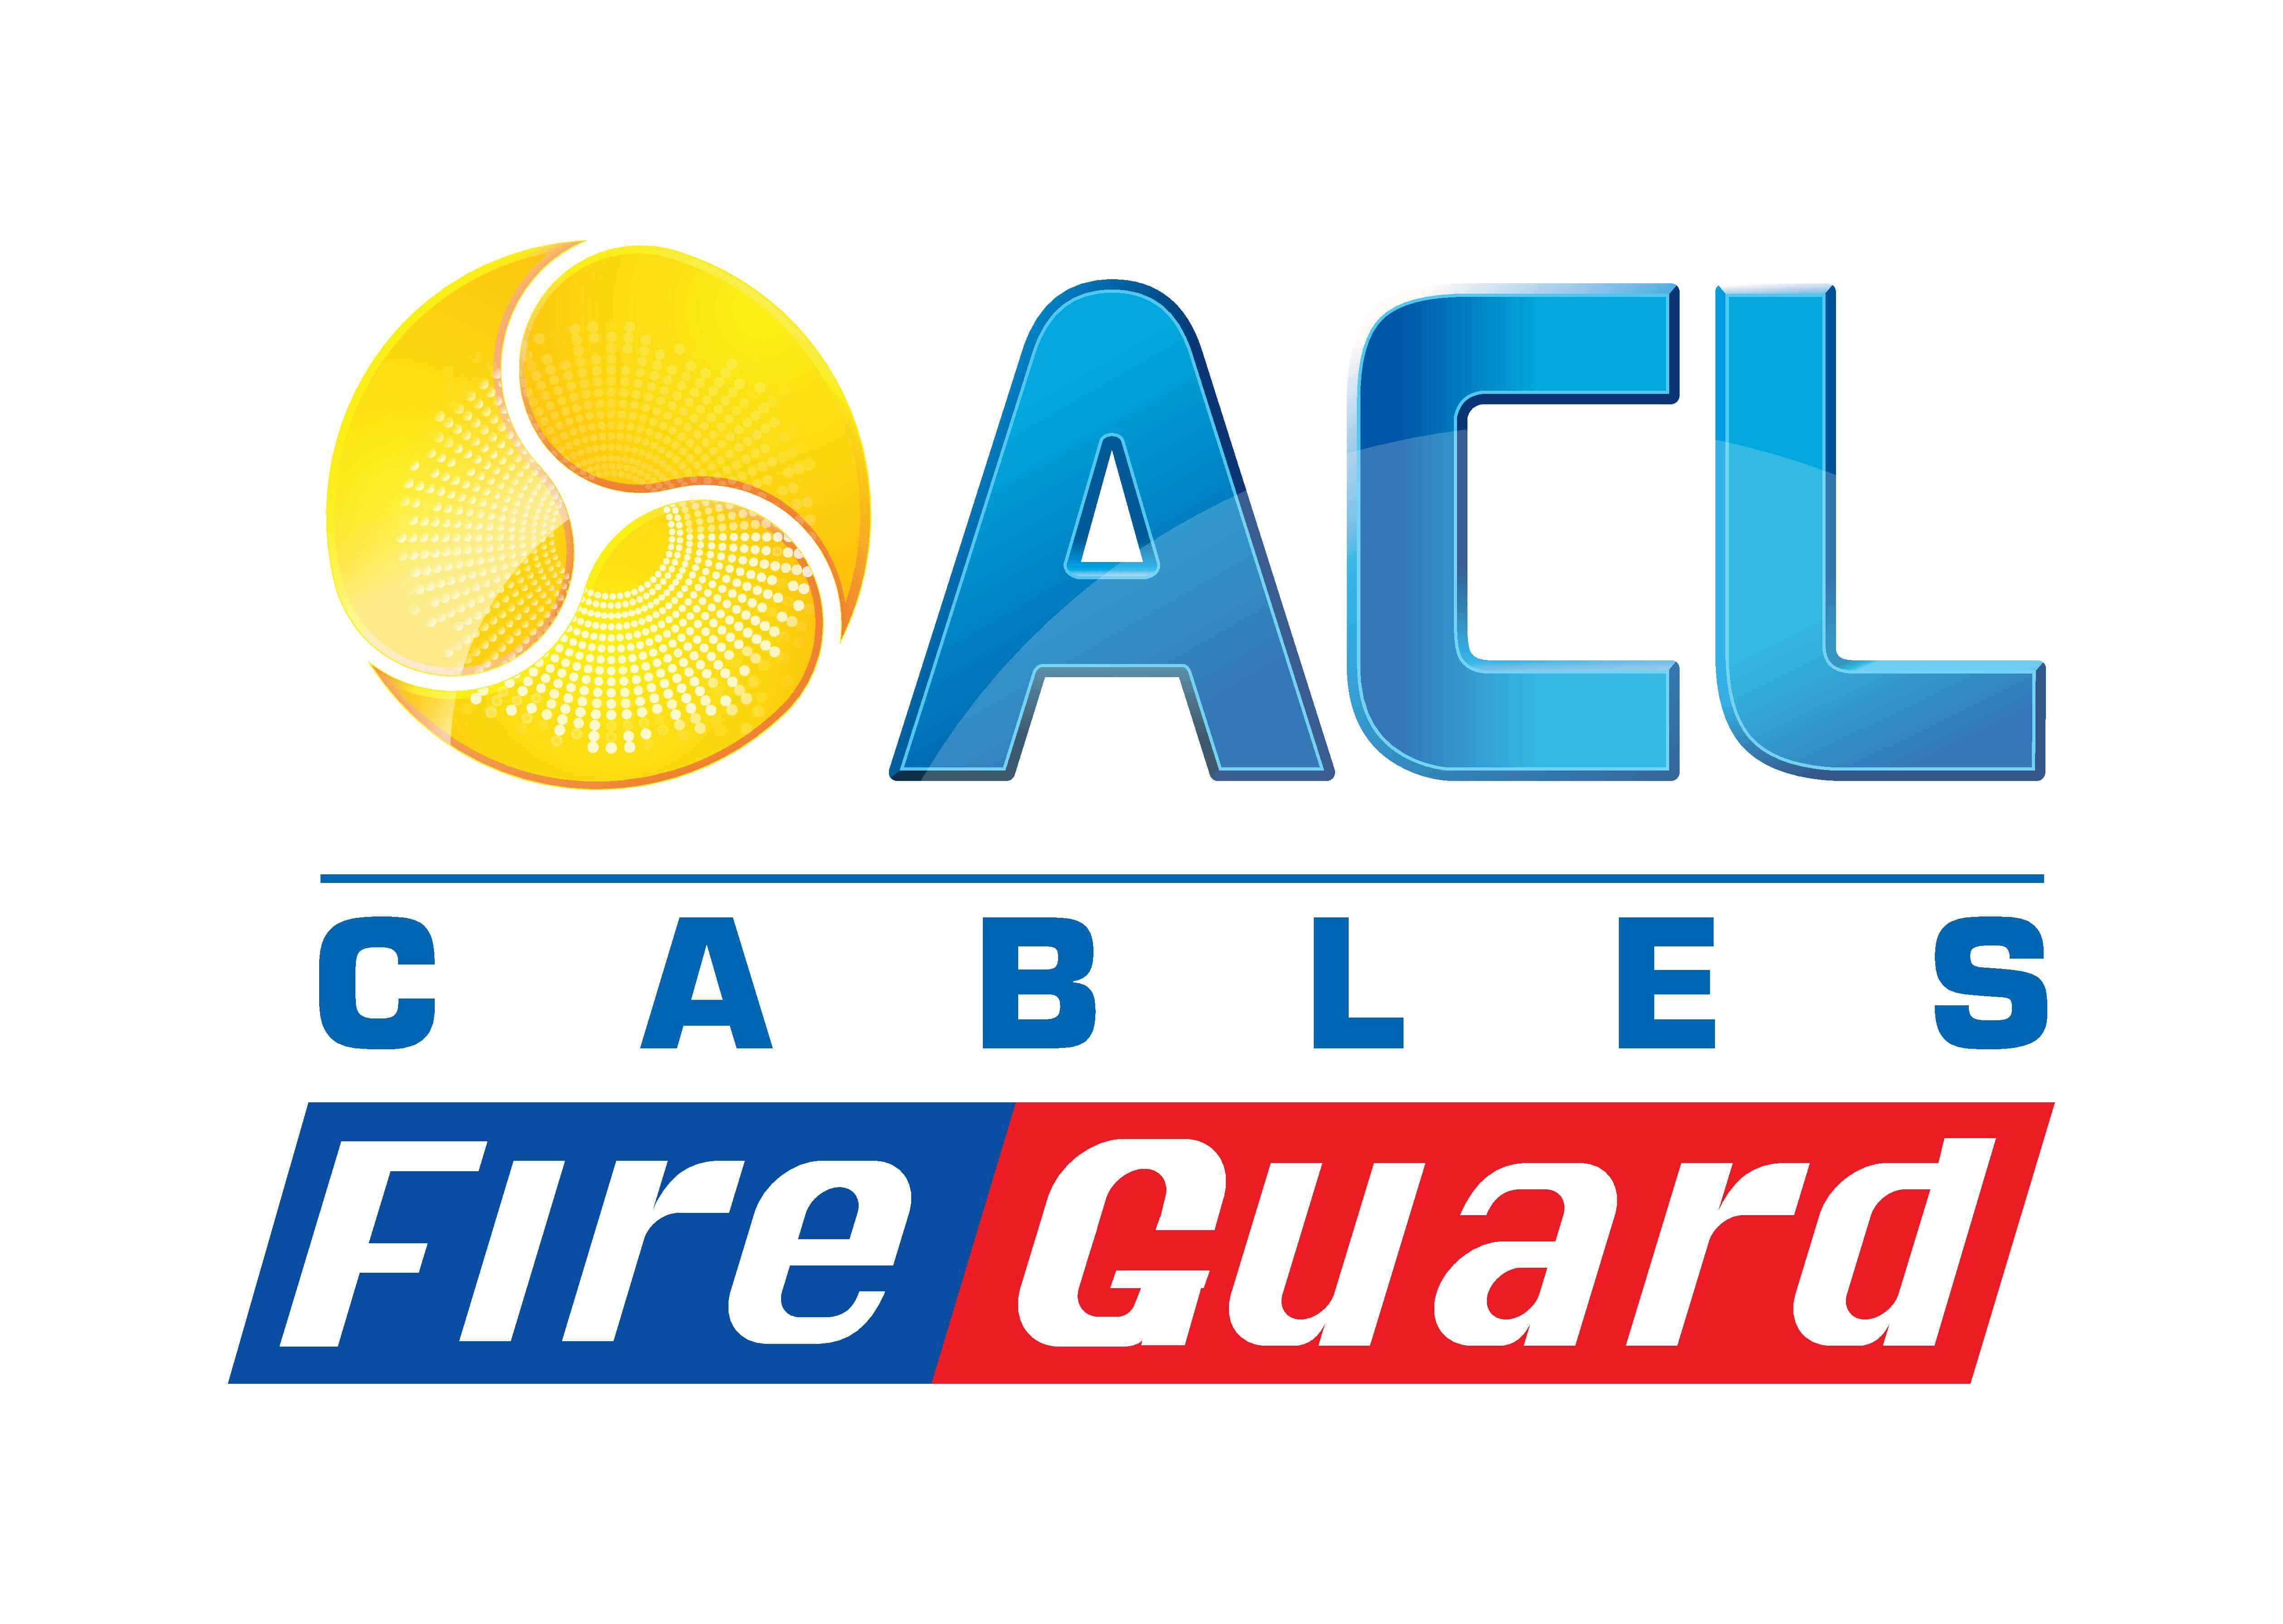 Acl Cables Plc The Largest Manufacturer Of In Sri Lanka Details About 12 2 W Ground Romex Indoor Electrical Wire 1039 Ftall Fire Guard Brand Celebrates 13 Years Protecting Hom